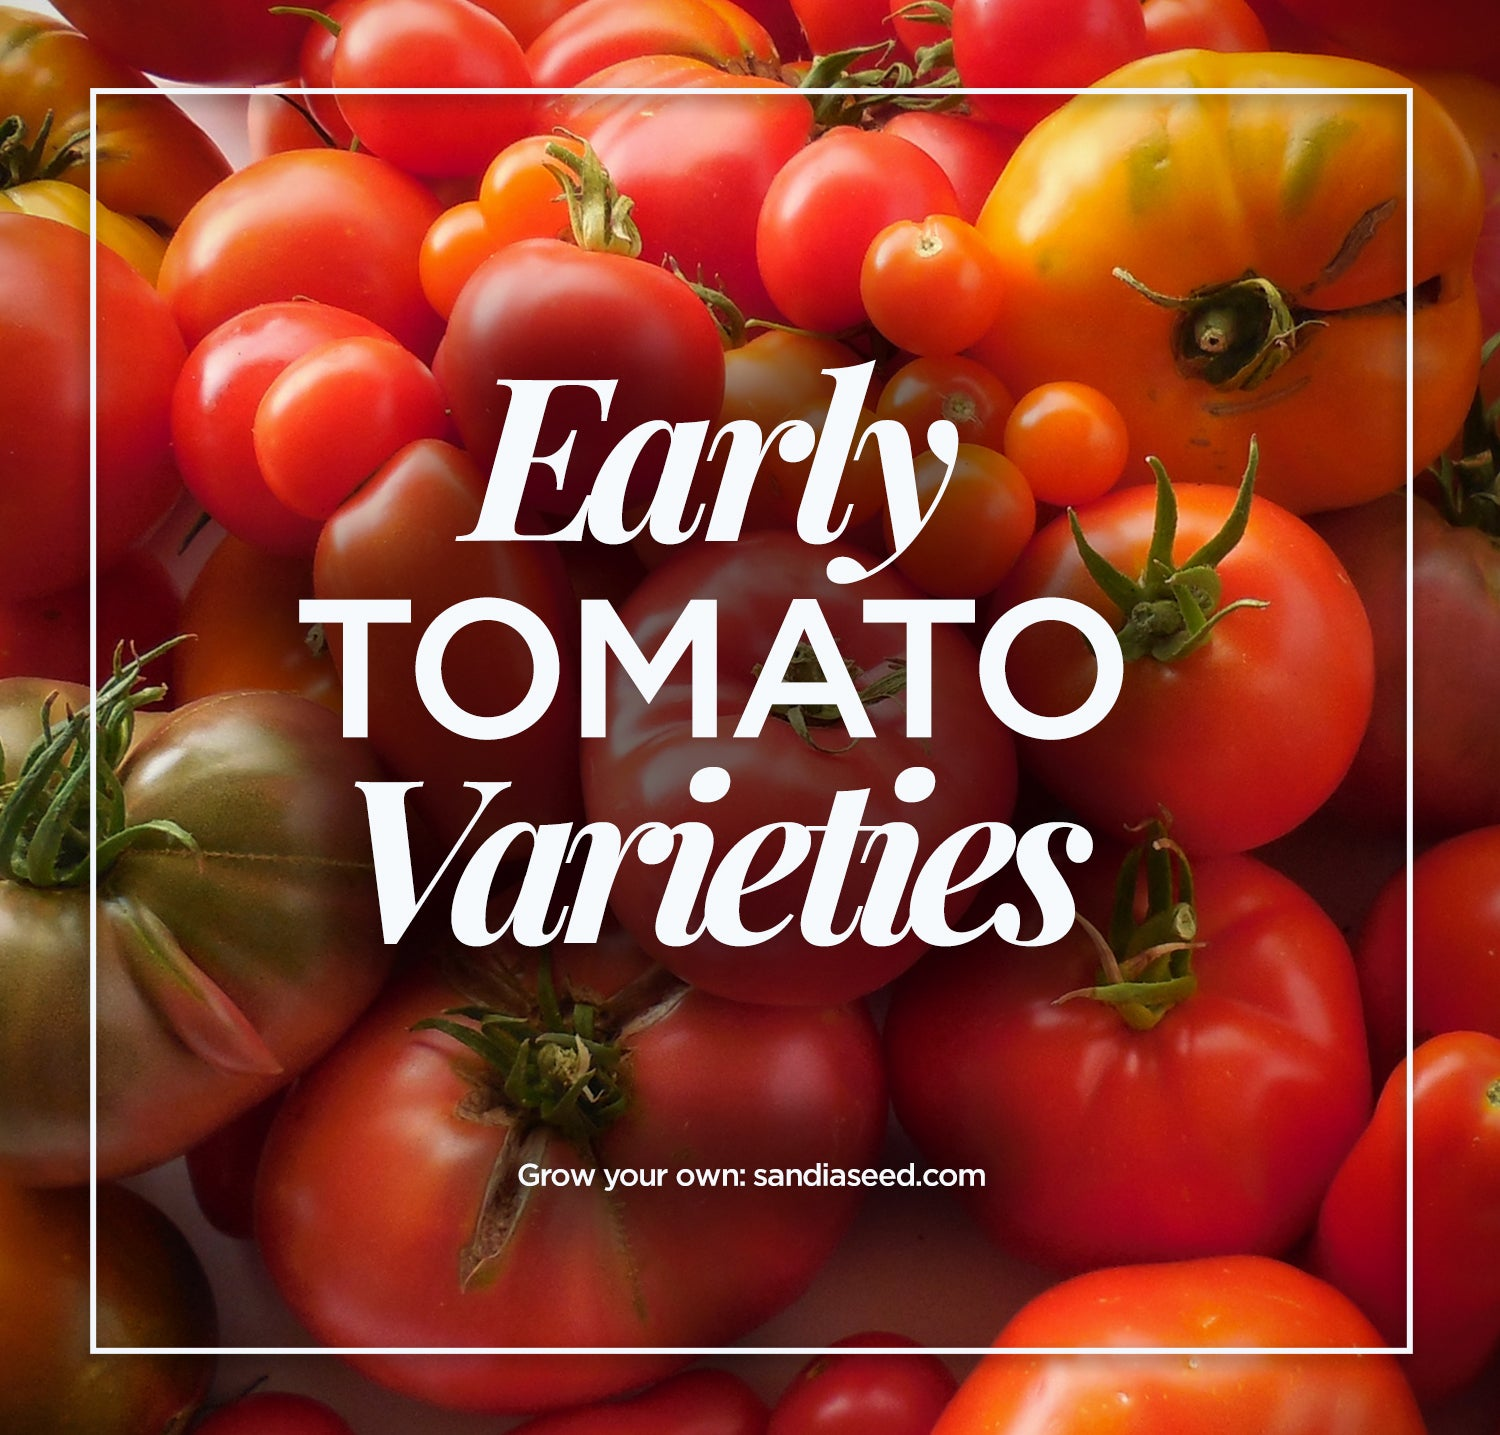 Early Tomato Varieties